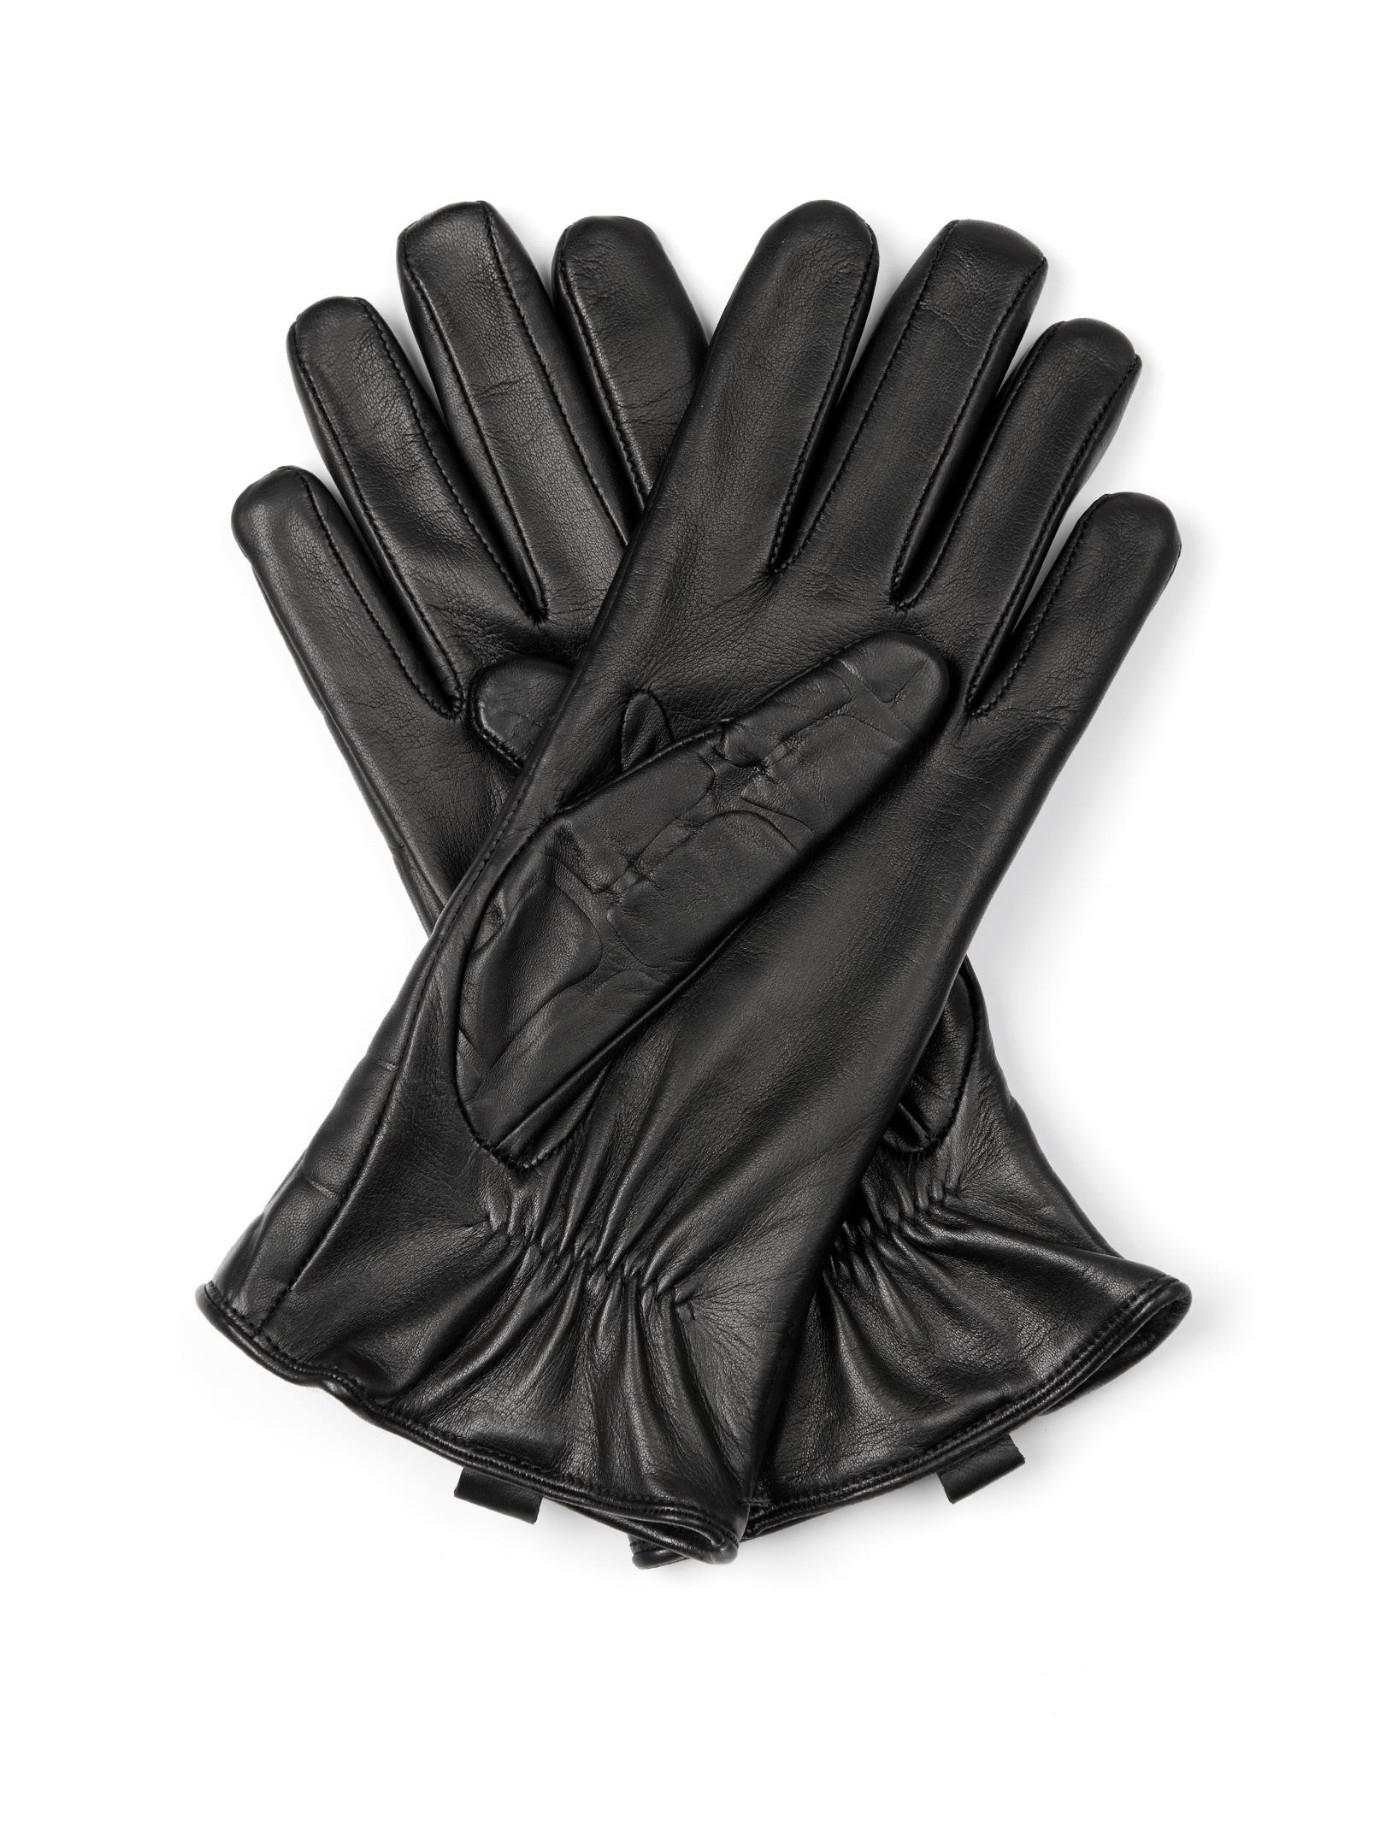 Alex d leather gloves compilation 3